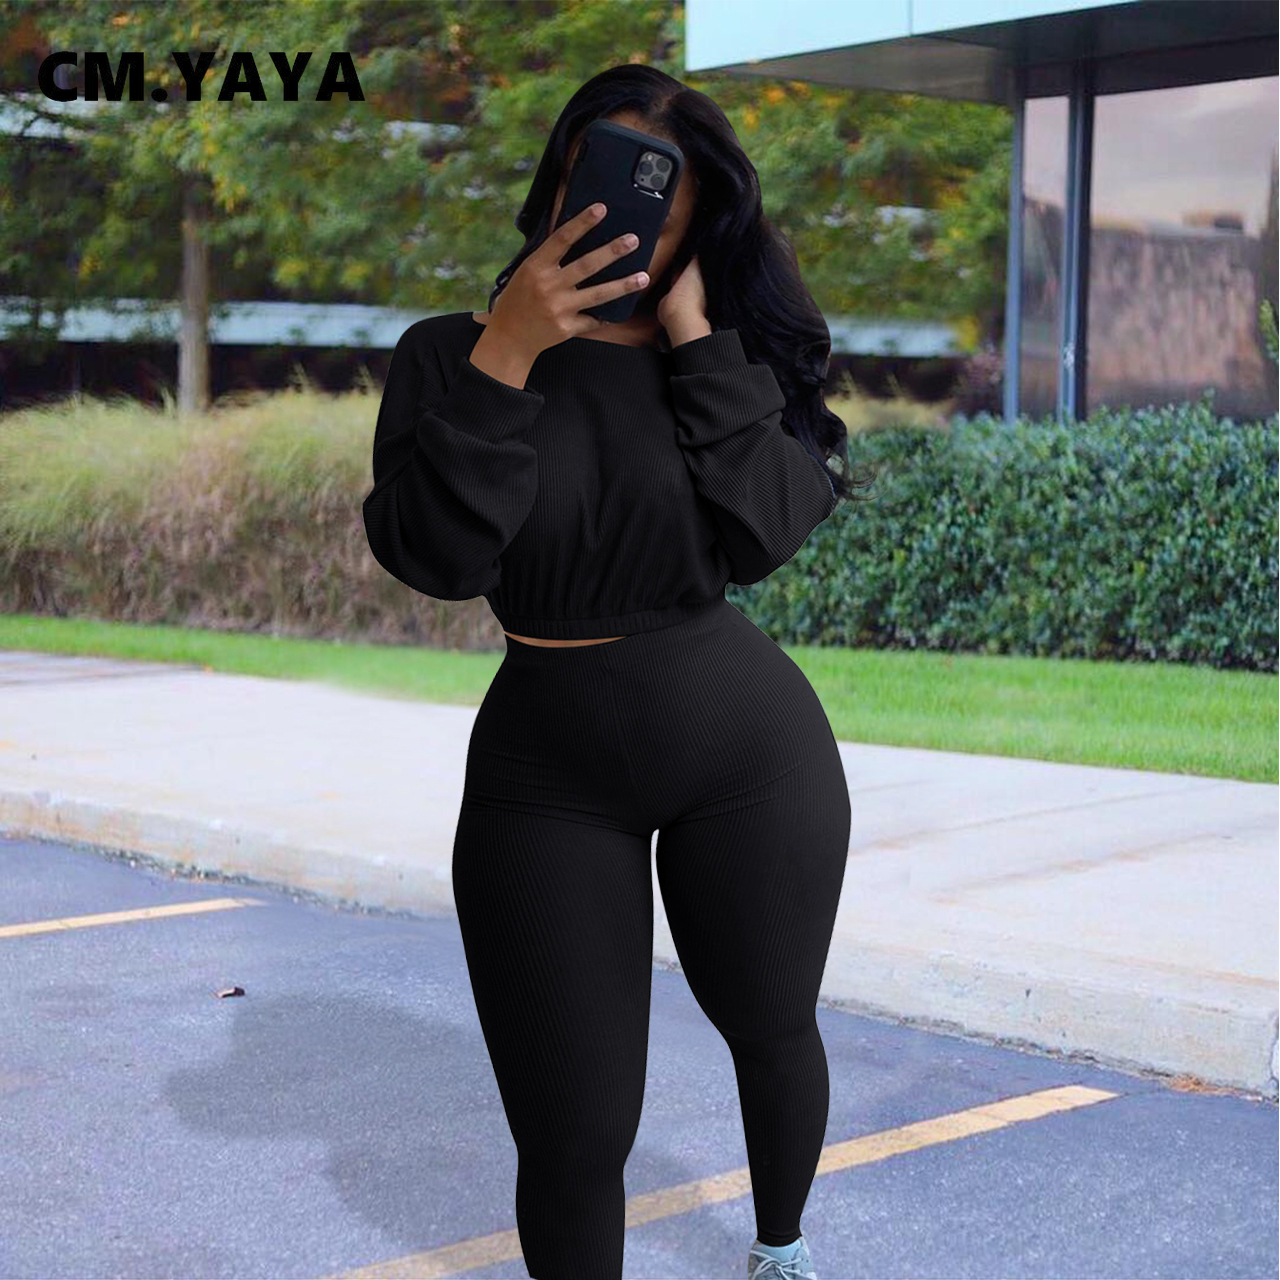 CM.YAYA Knitted Ribbed Women's Set Long Sleeve Sweater Top Pencil Pants Suit Active Wear Tracksuit Two Piece Set Fitness Outfits 5